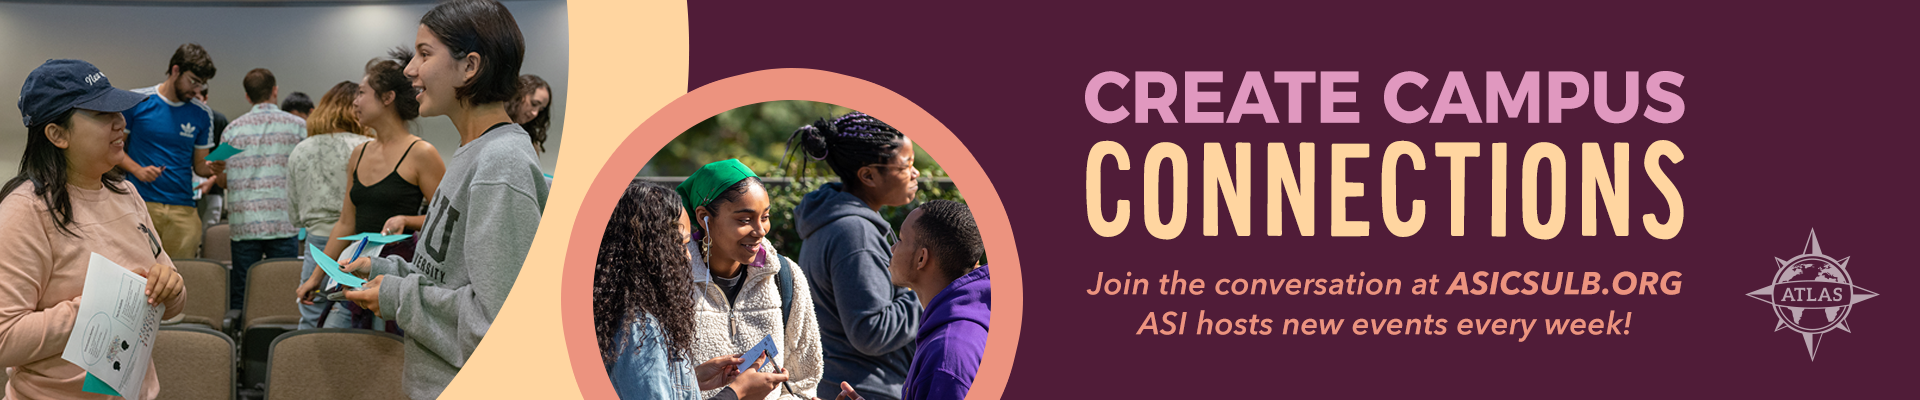 Create Campus Connections